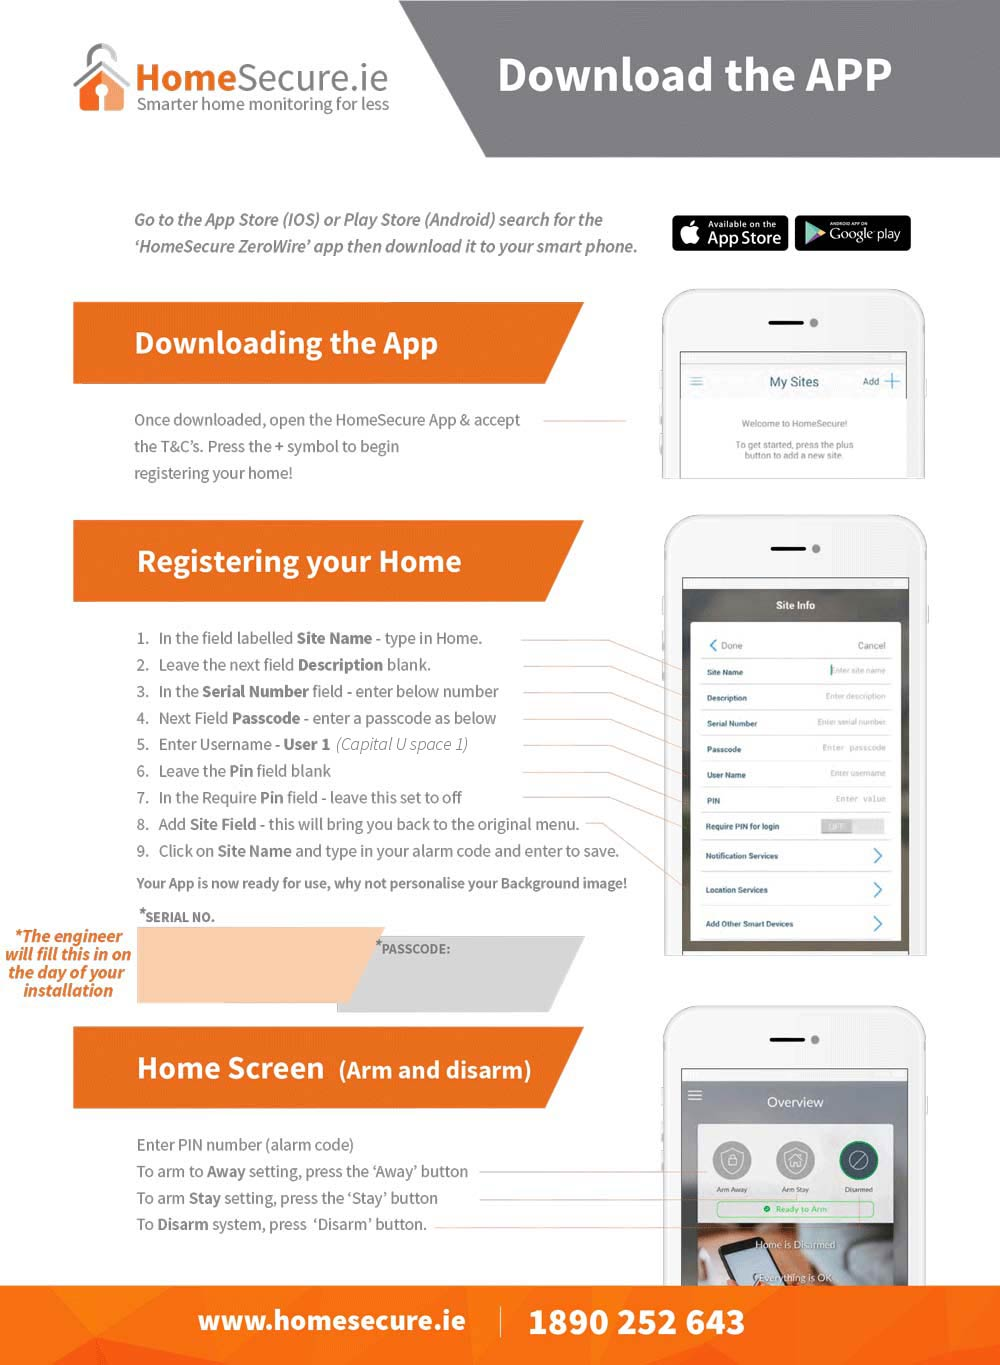 how-to-download-homesecure-app.jpg